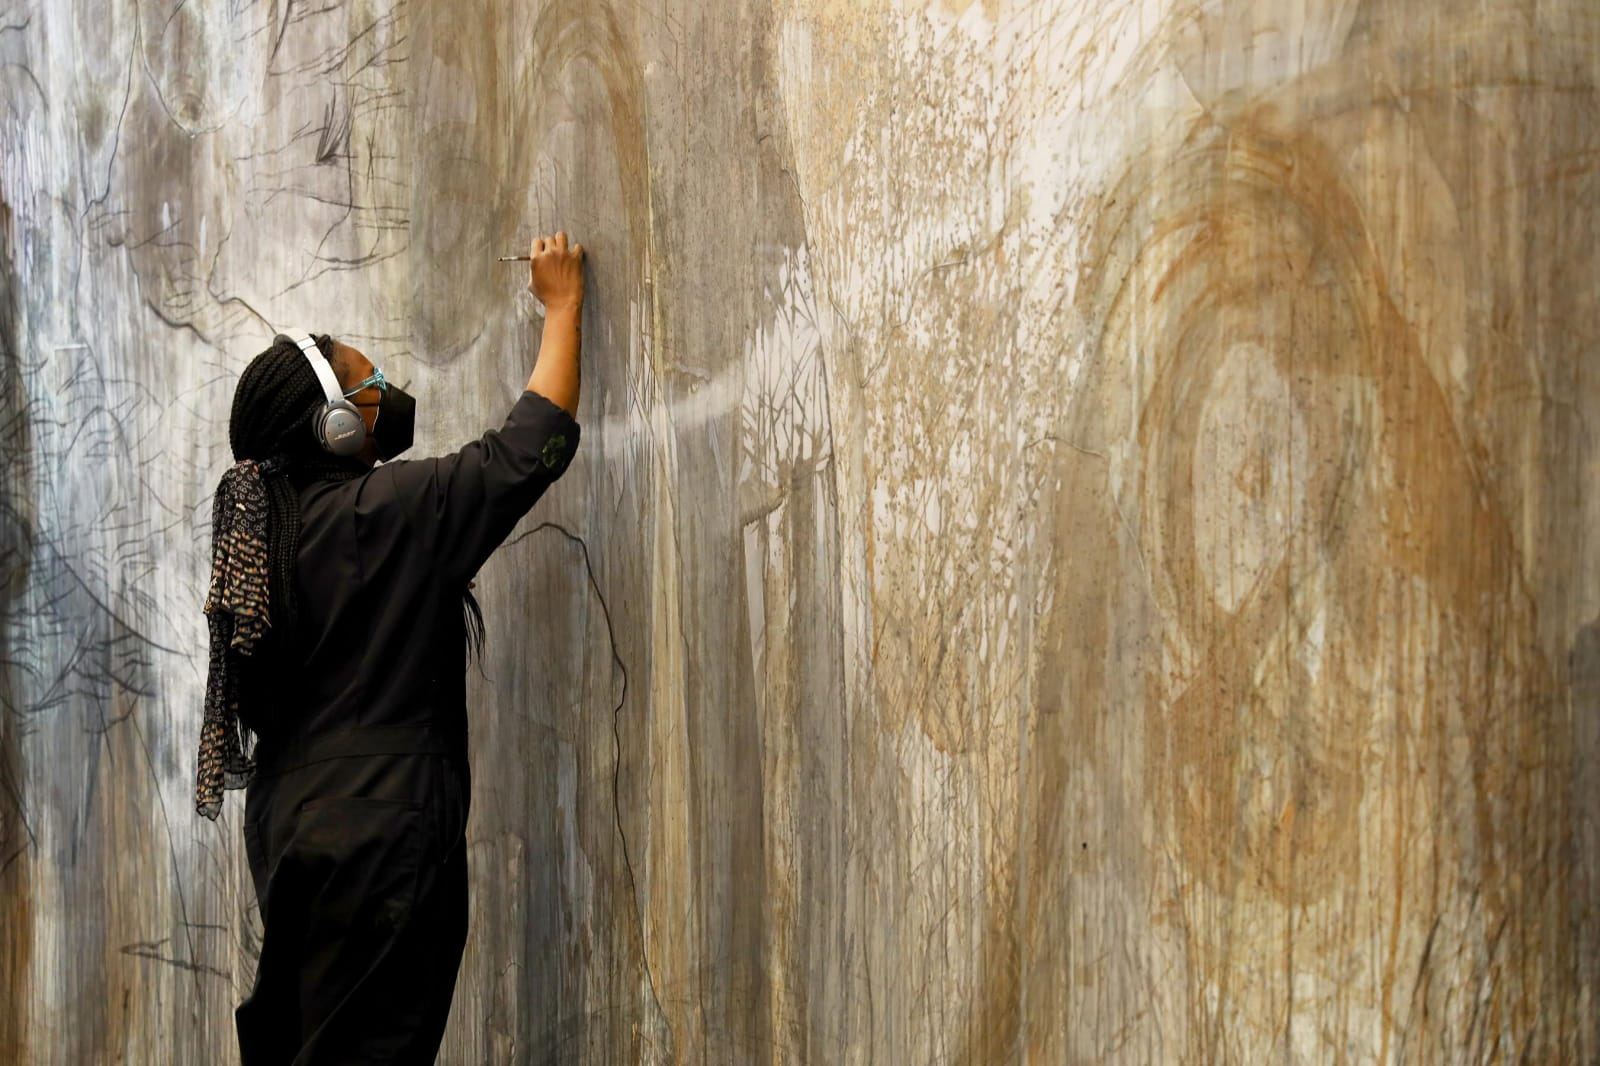 01 October 2021 Marcia Kure's Wall Drawing exhibition opens at the Menil Drawing Institute, Houston. On view through August 2022. Read more